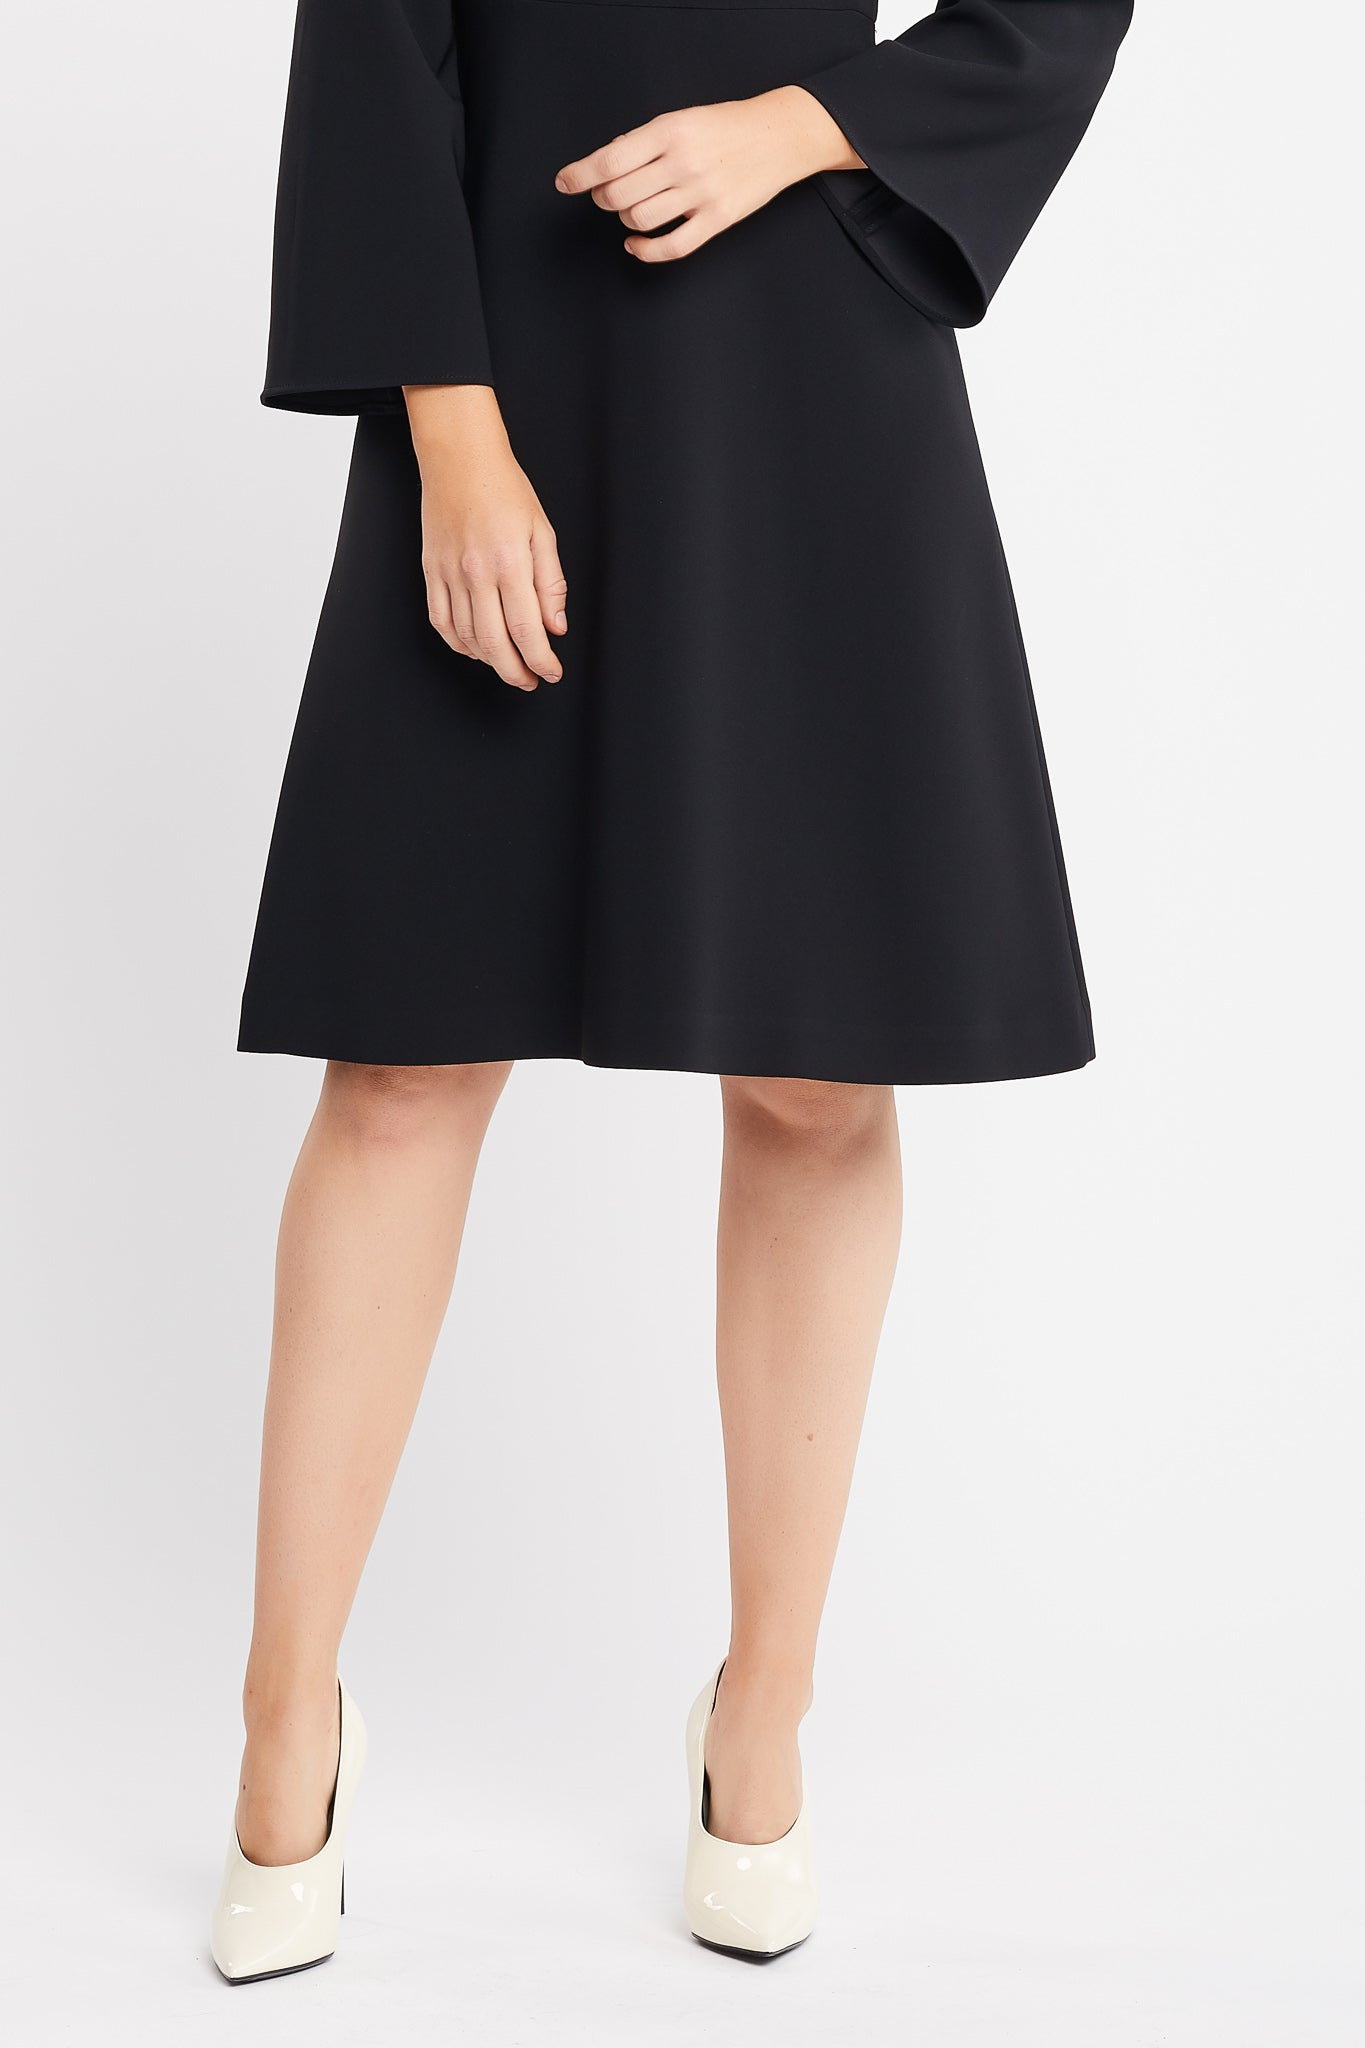 Vamilla Long Sleeve Flared Skirt Black Work and Cocktail Dress